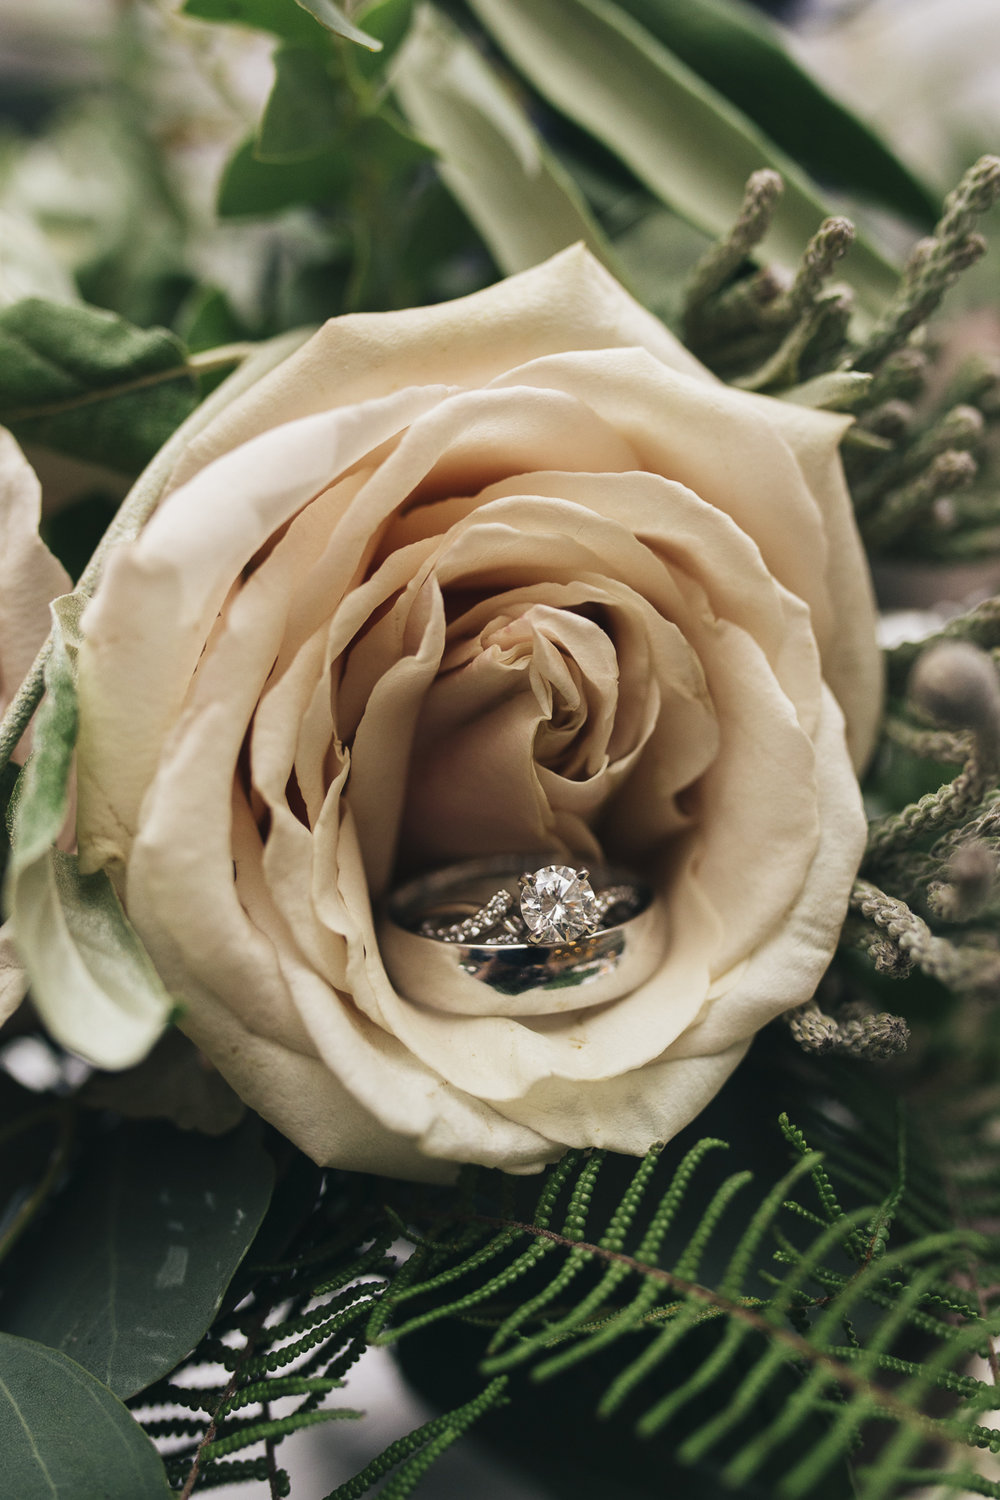 Diamond wedding ring photography in bridal bouquet.